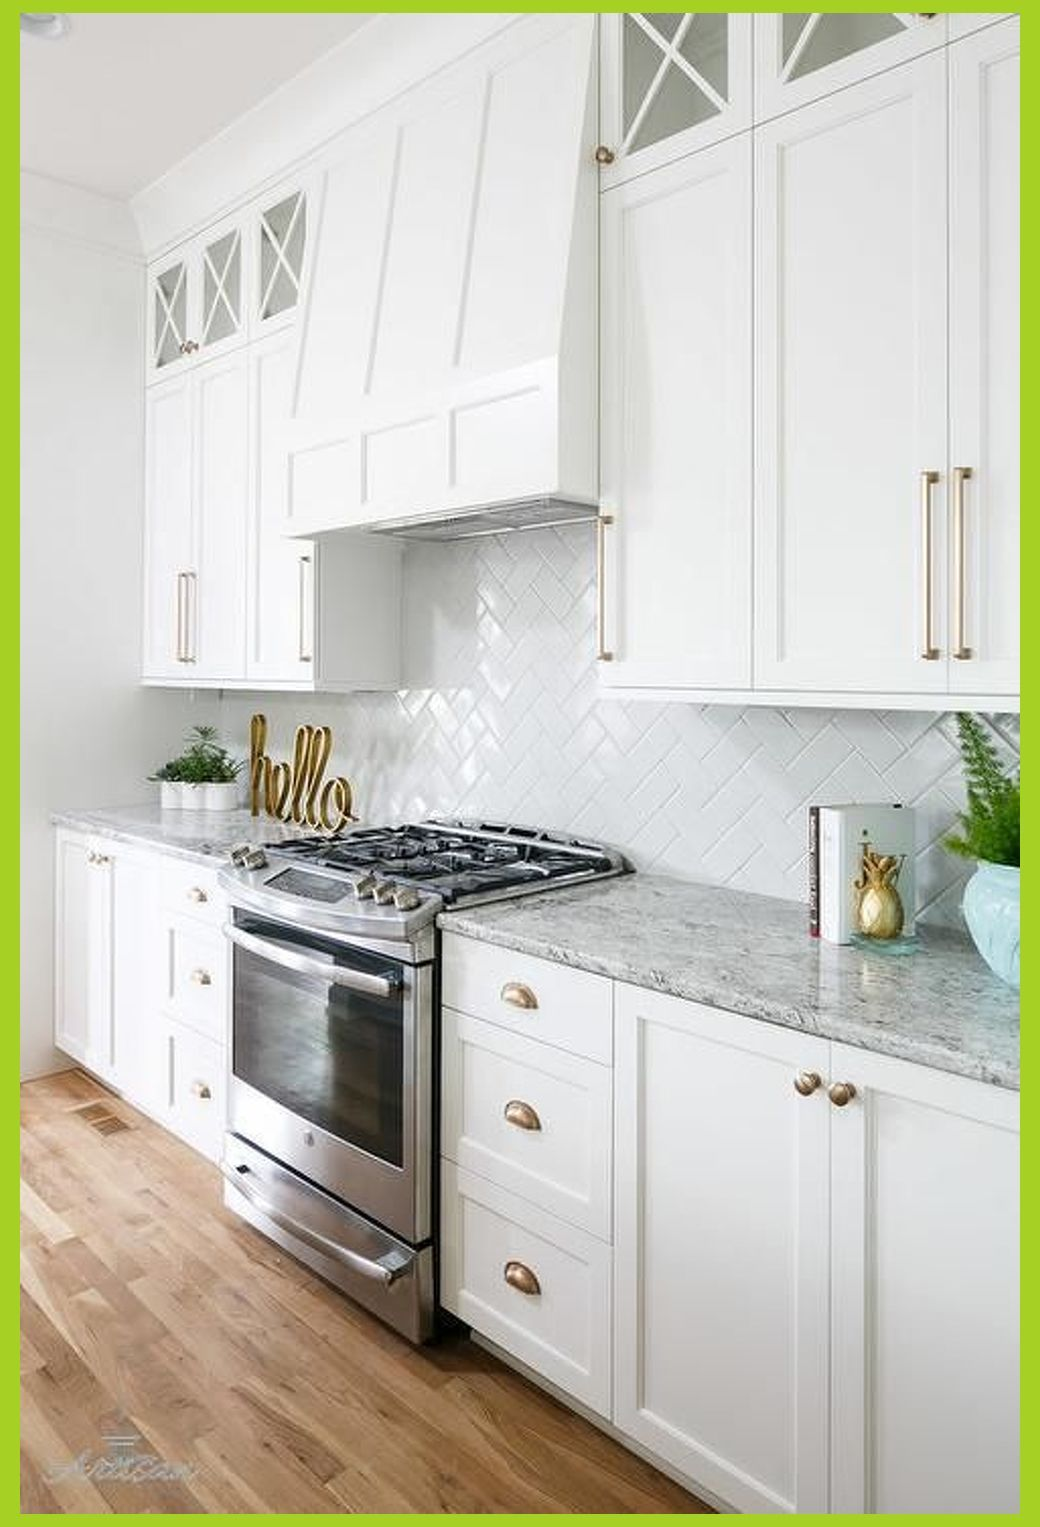 Pros And Cons Of Stainless Steel Backsplash Kitchen Decor Tips In 2020 Shaker Style Kitchen Cabinets Kitchen Cabinets Decor Kitchen Cabinet Styles